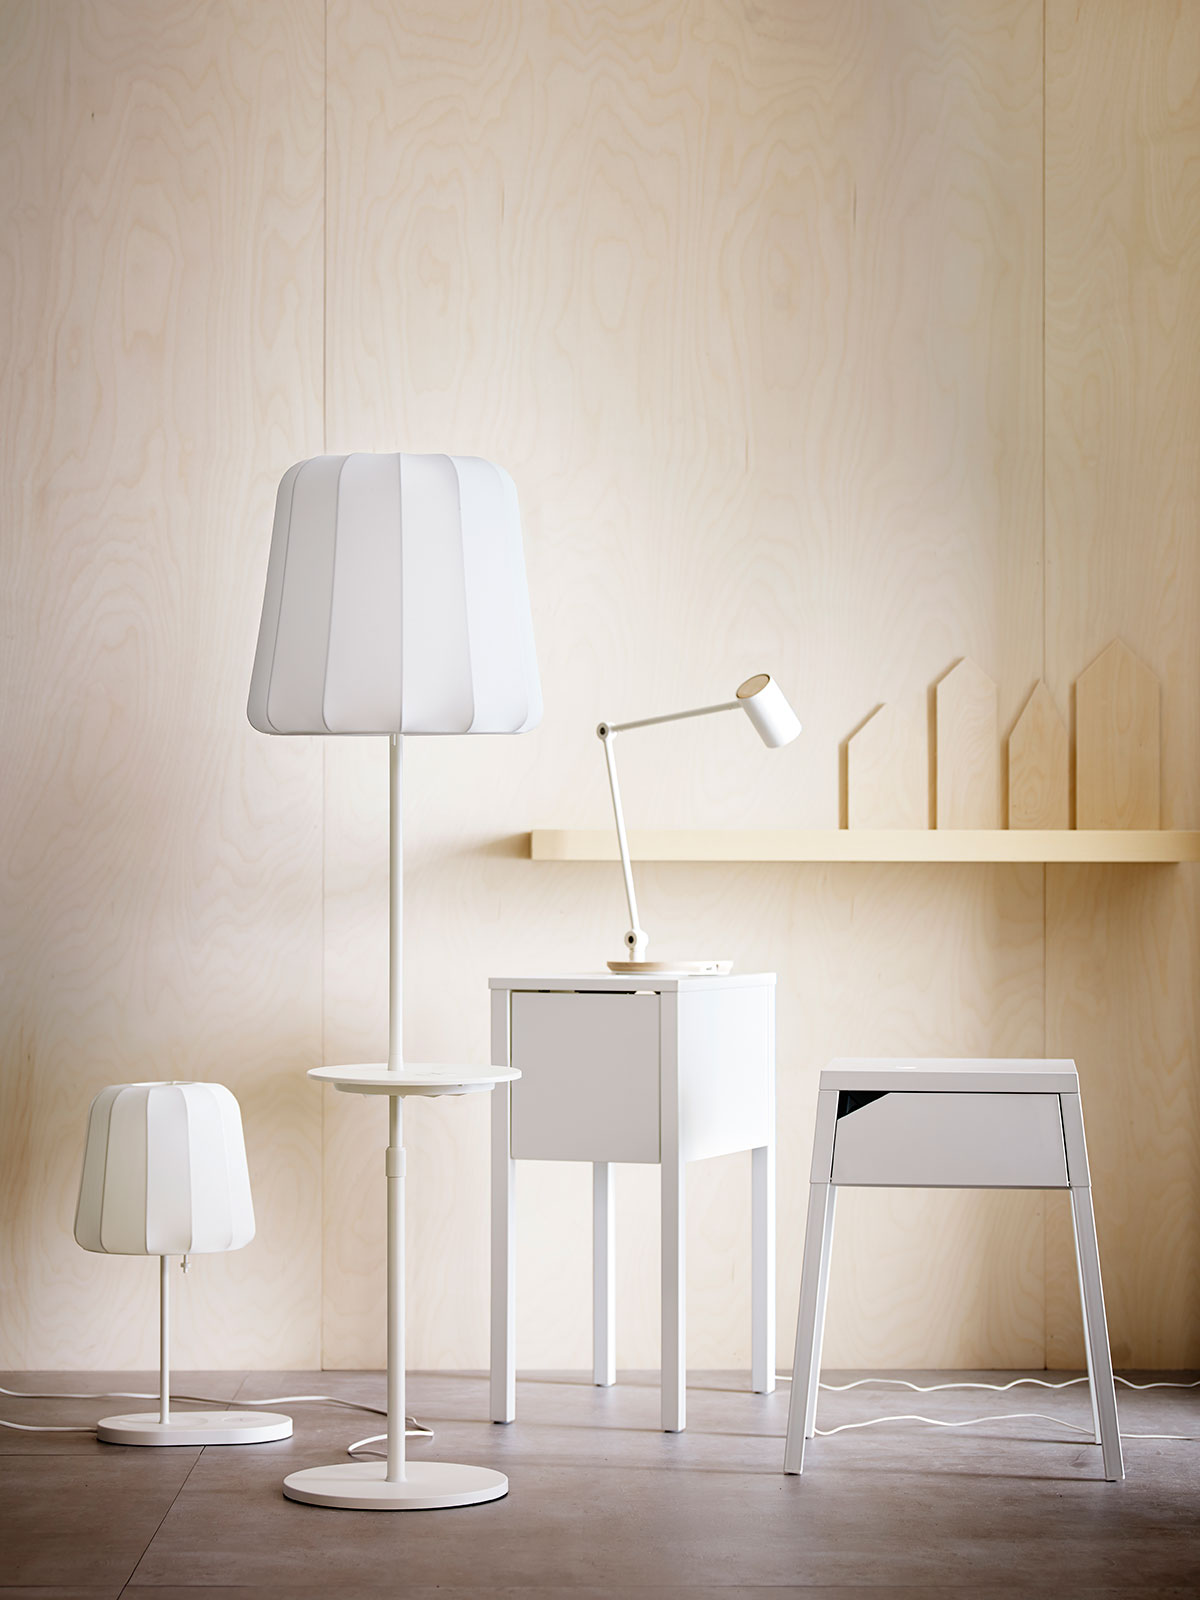 IKEA's Wireless Charging Furniture Makes Technology More Accessible